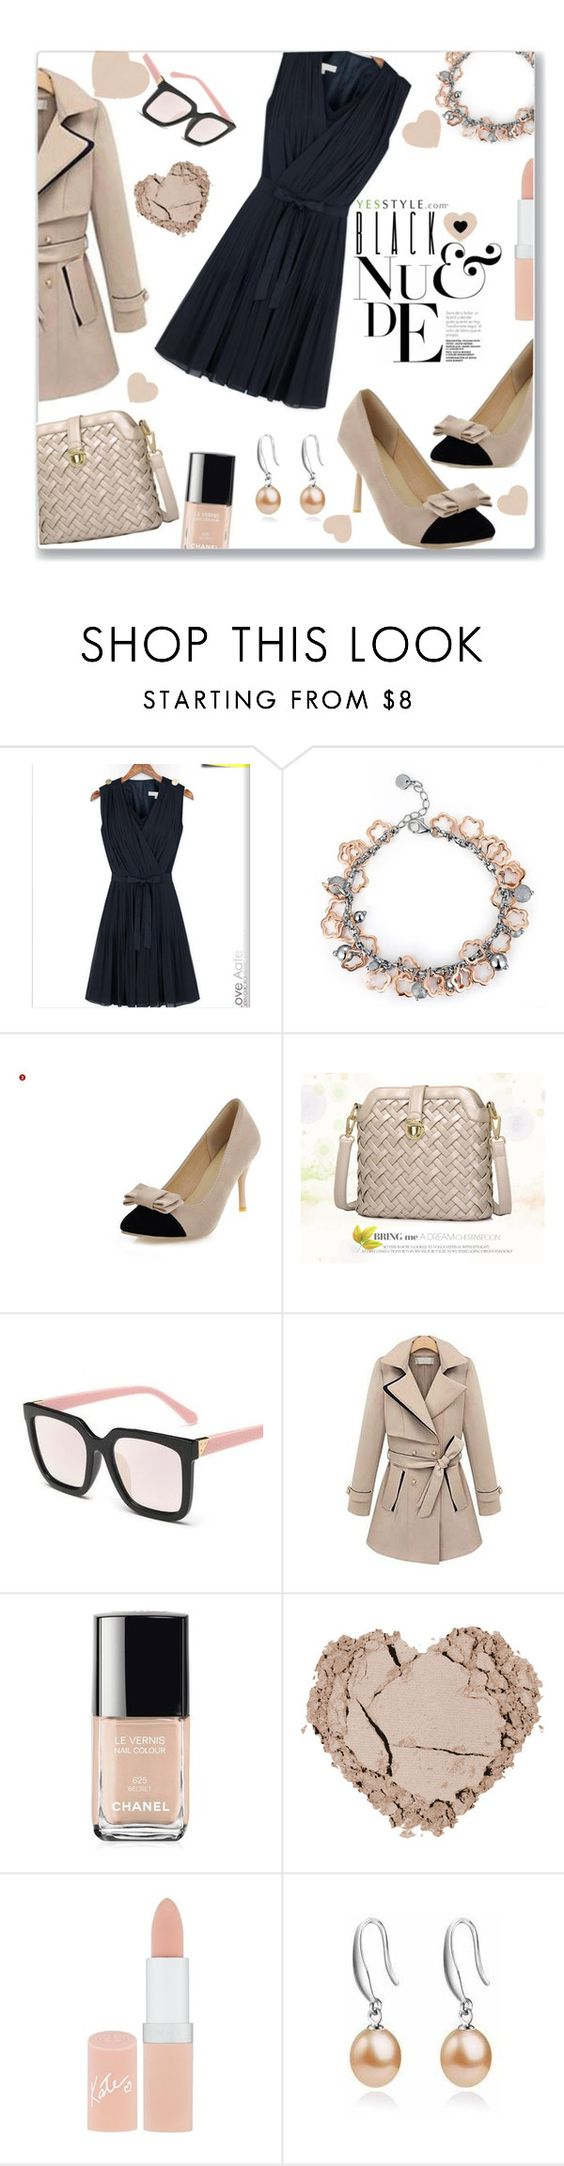 """""""Valentines Day Nude"""" by jckallan ❤ liked on Polyvore featuring MBLife.com, Nouvelle Footwear, Furifs, Chanel, Rimmel, ViVi Pearl, women's clothing, women, female and woman"""